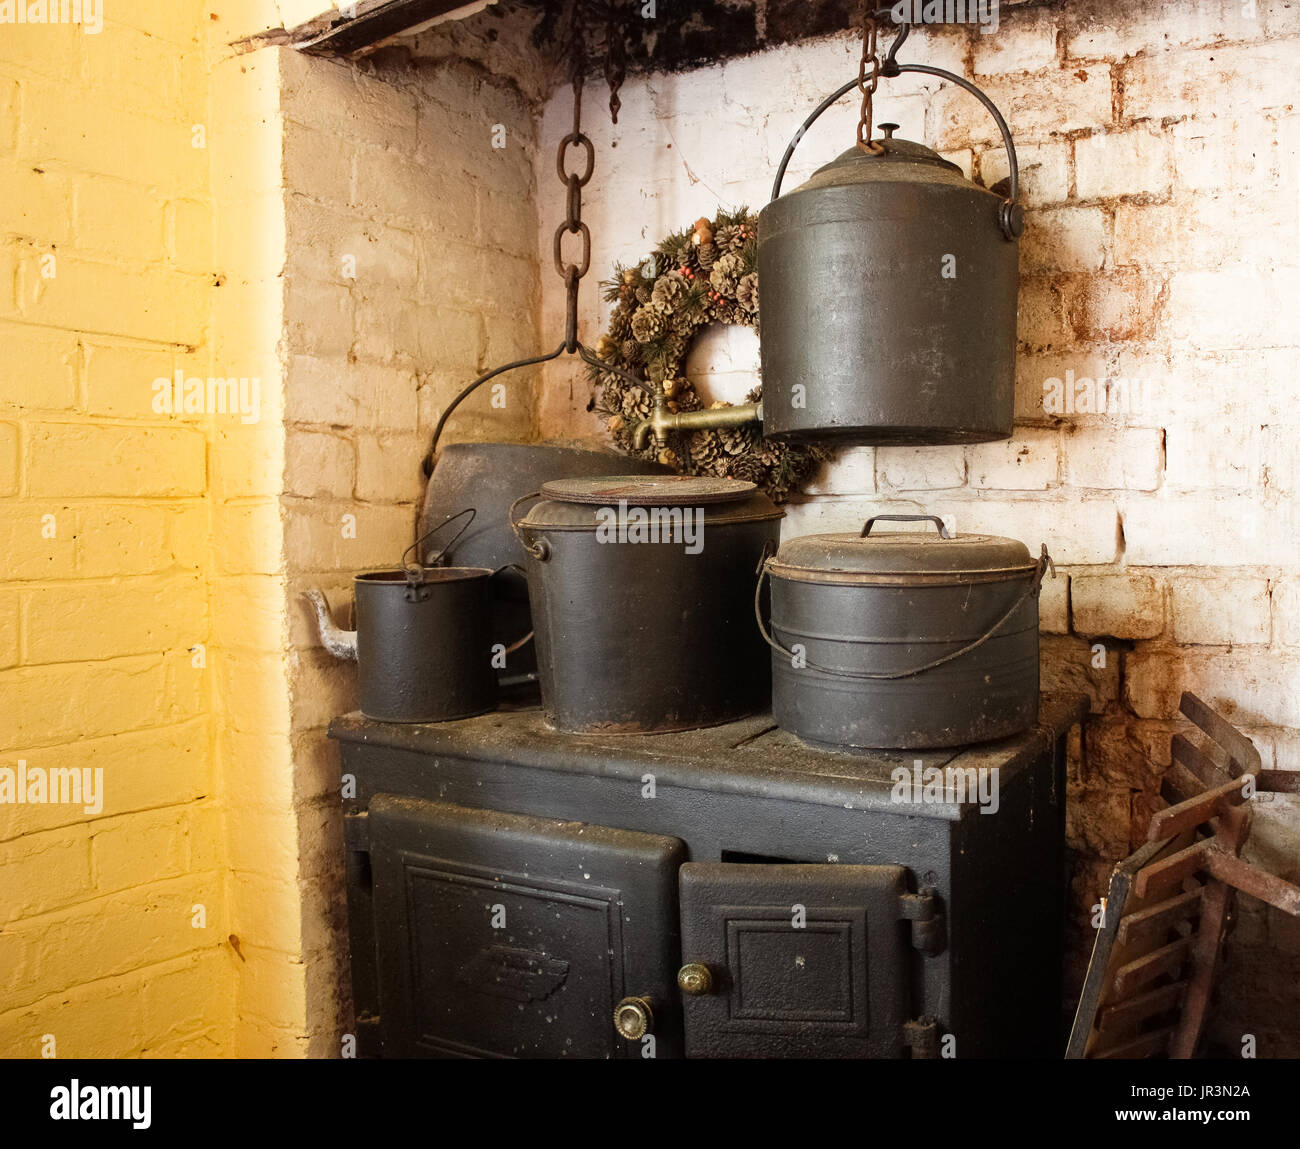 Old fashioned wood cooking stove with cast iron pots against brick wall - Stock Image